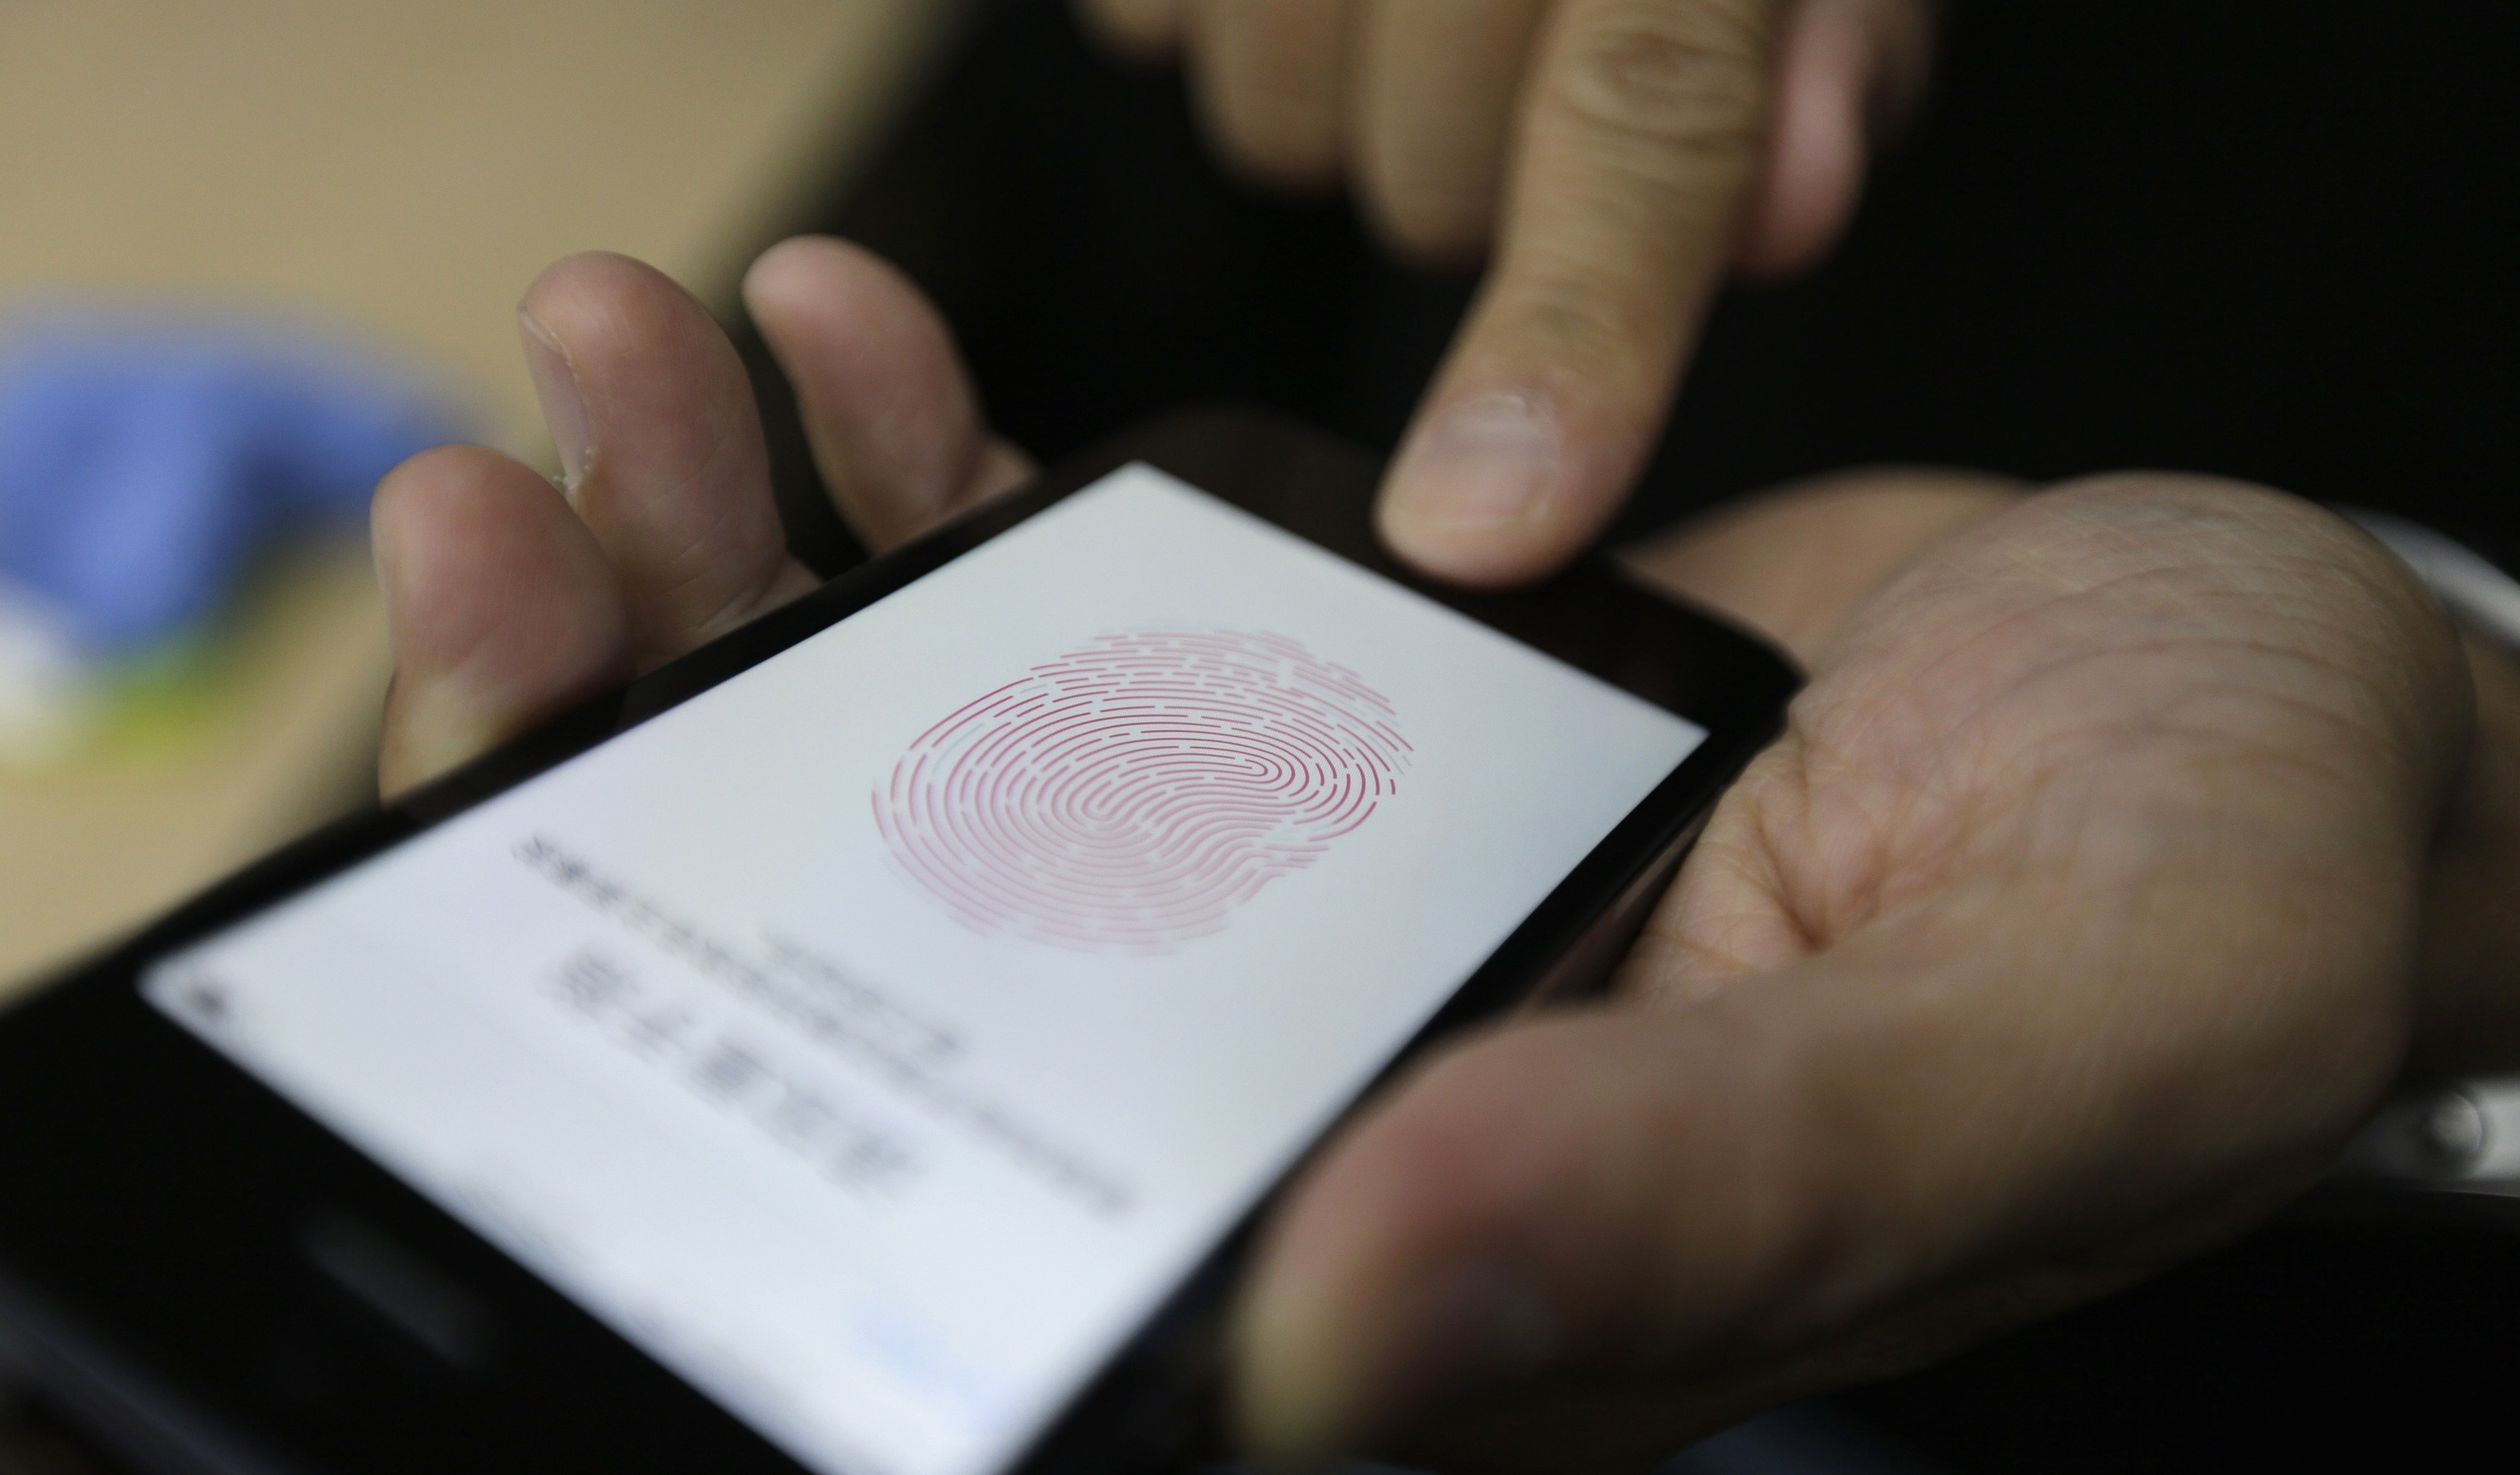 The fingerprint of the finger in the display of the iPhone — is this possible?